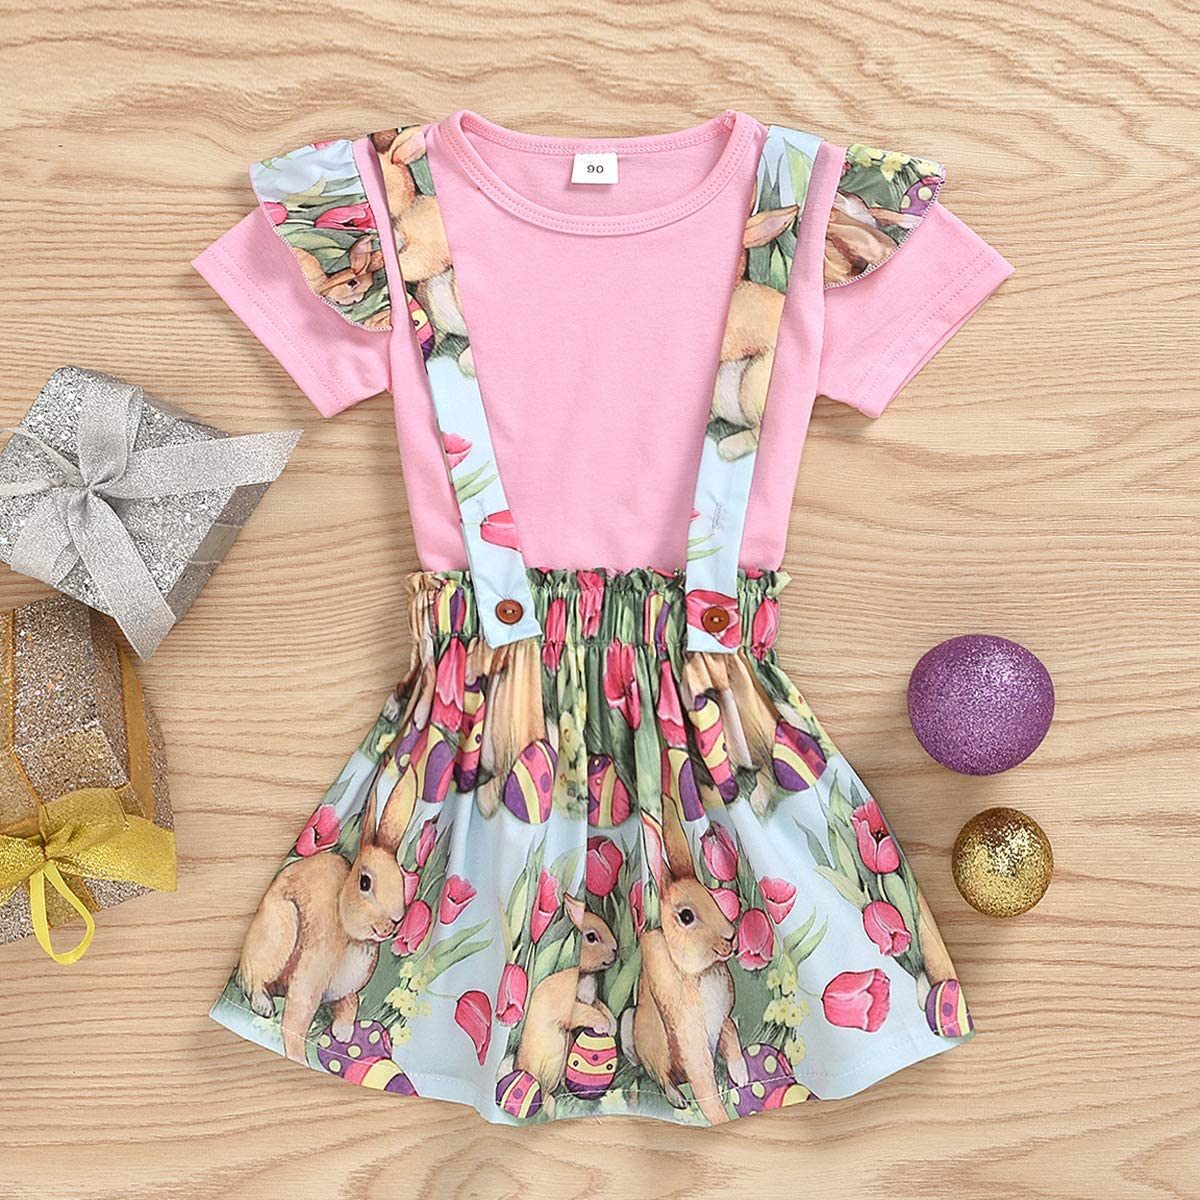 Baby Girl Easter Skirt Set Pink T-Shirt Top and Bunny Overall 2Pcs Toddler Easter Outfit Set